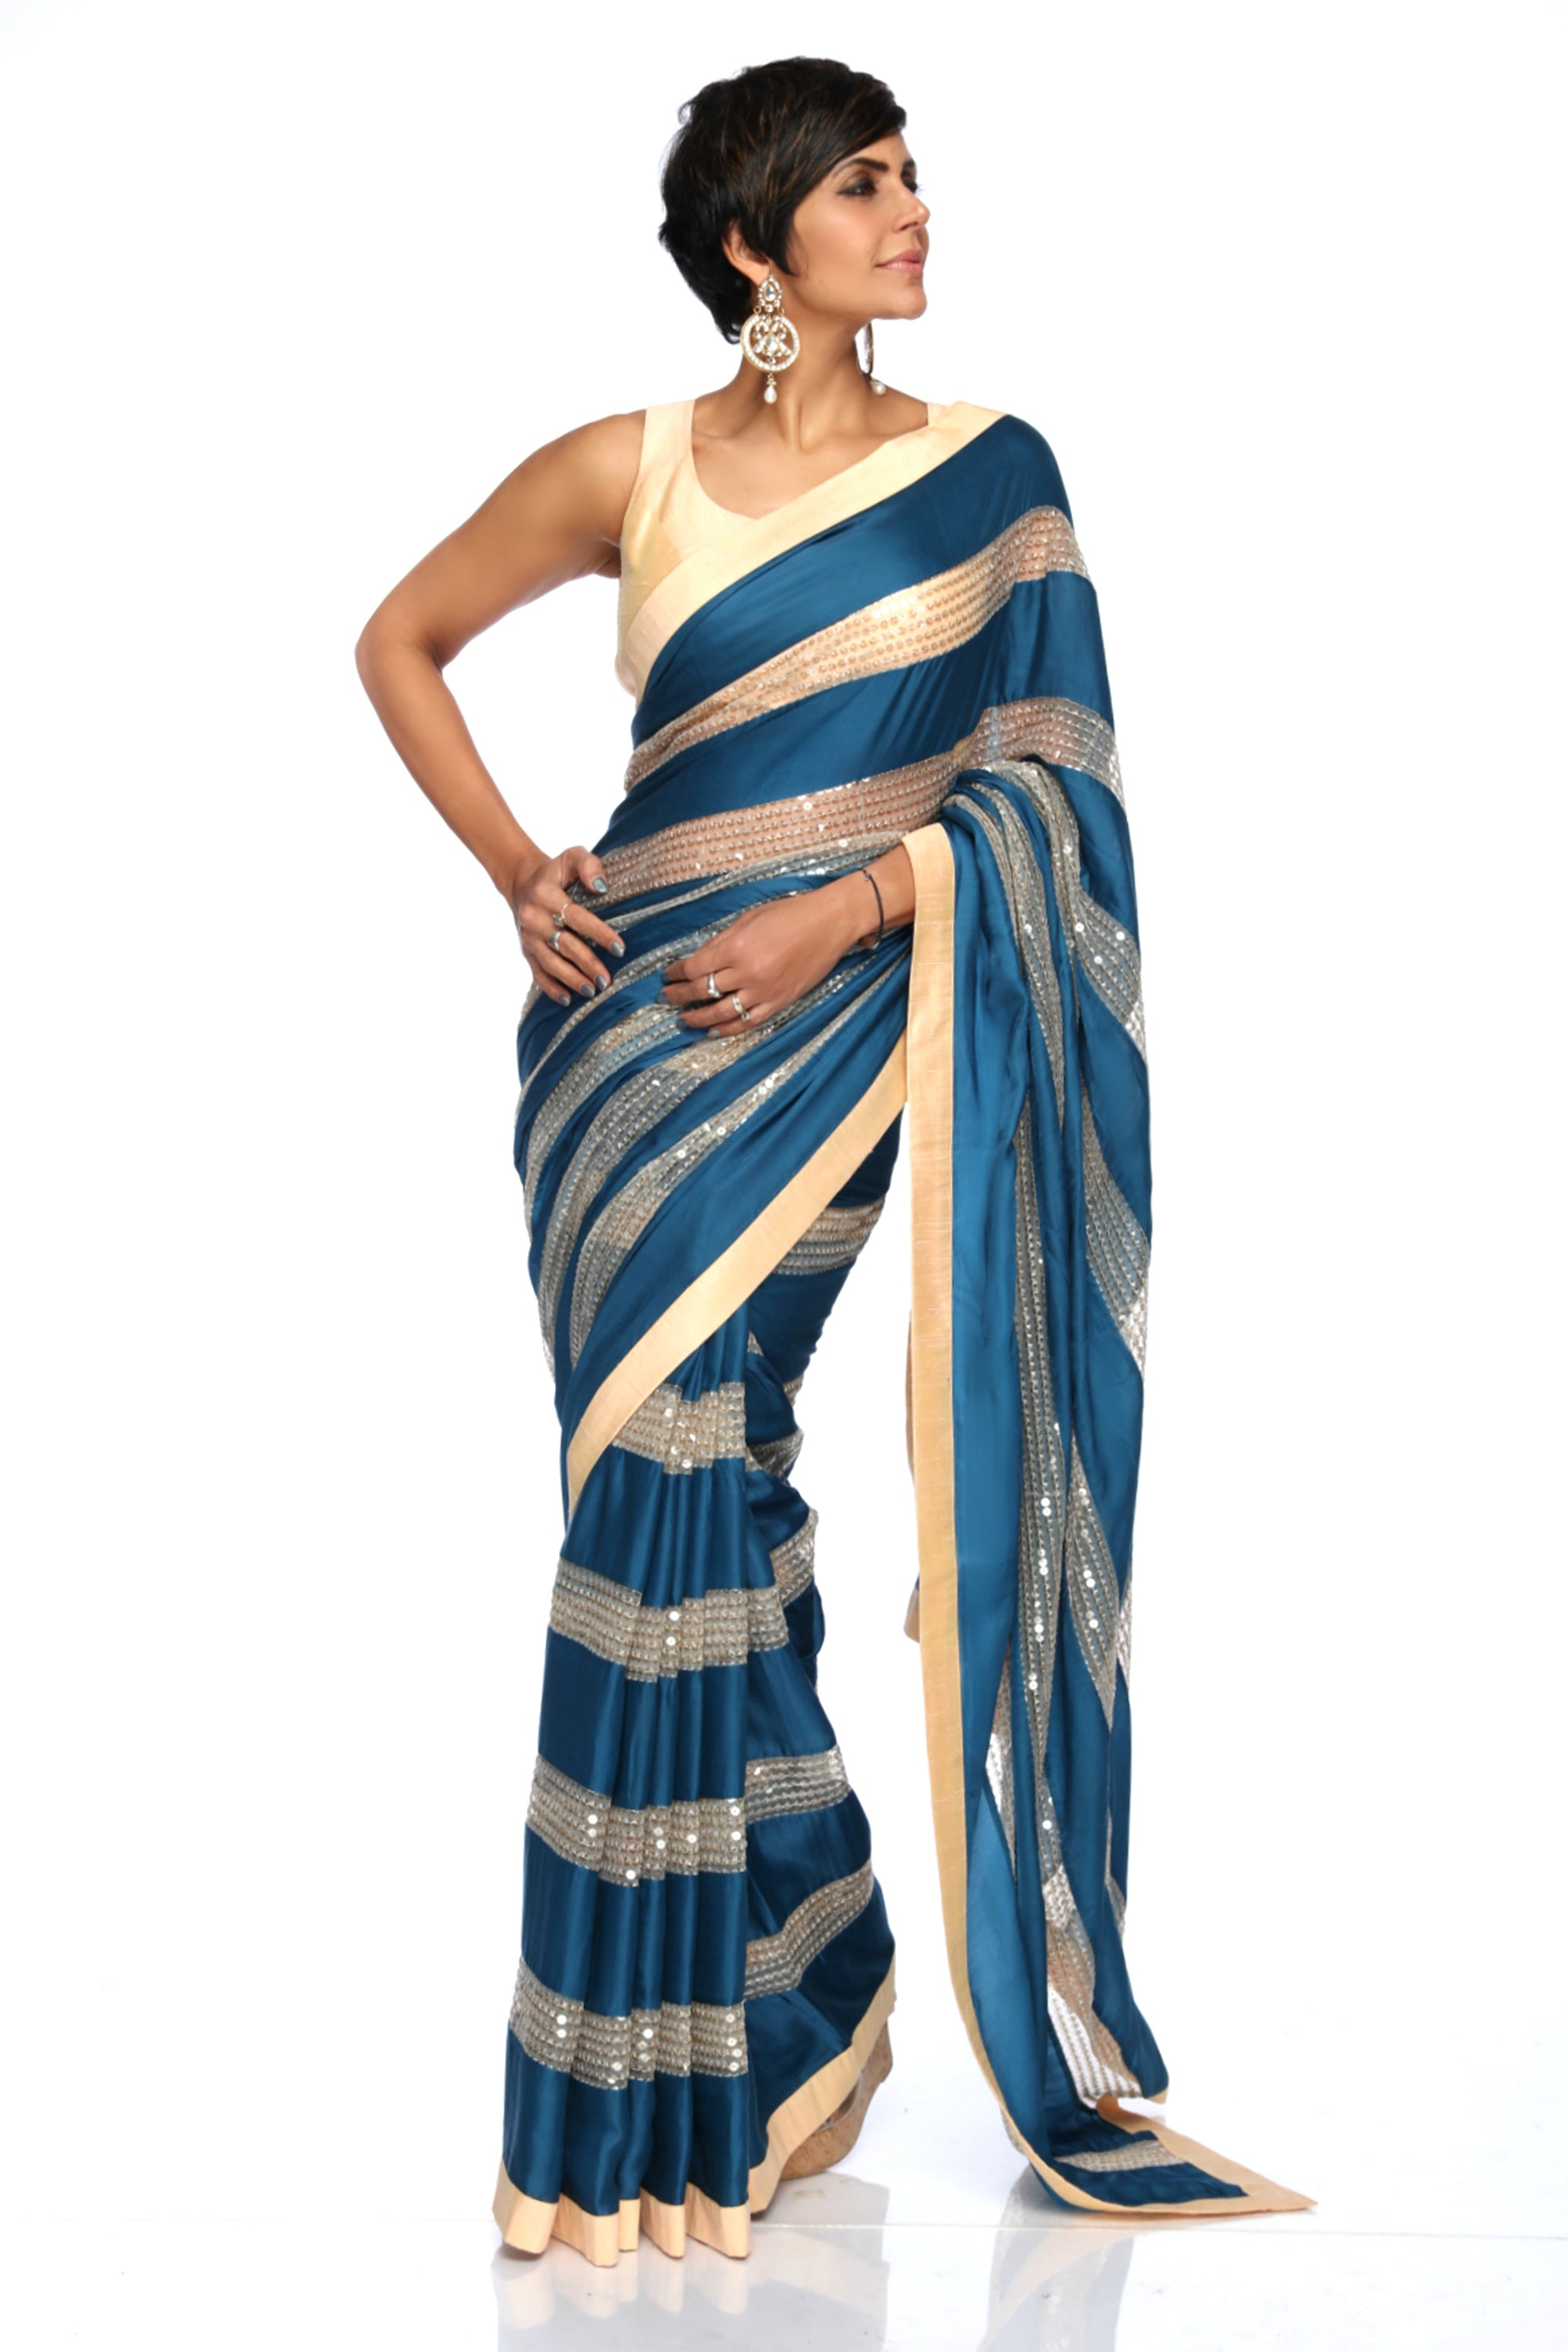 Teal Blue & Beige Sequins Saree FRONT